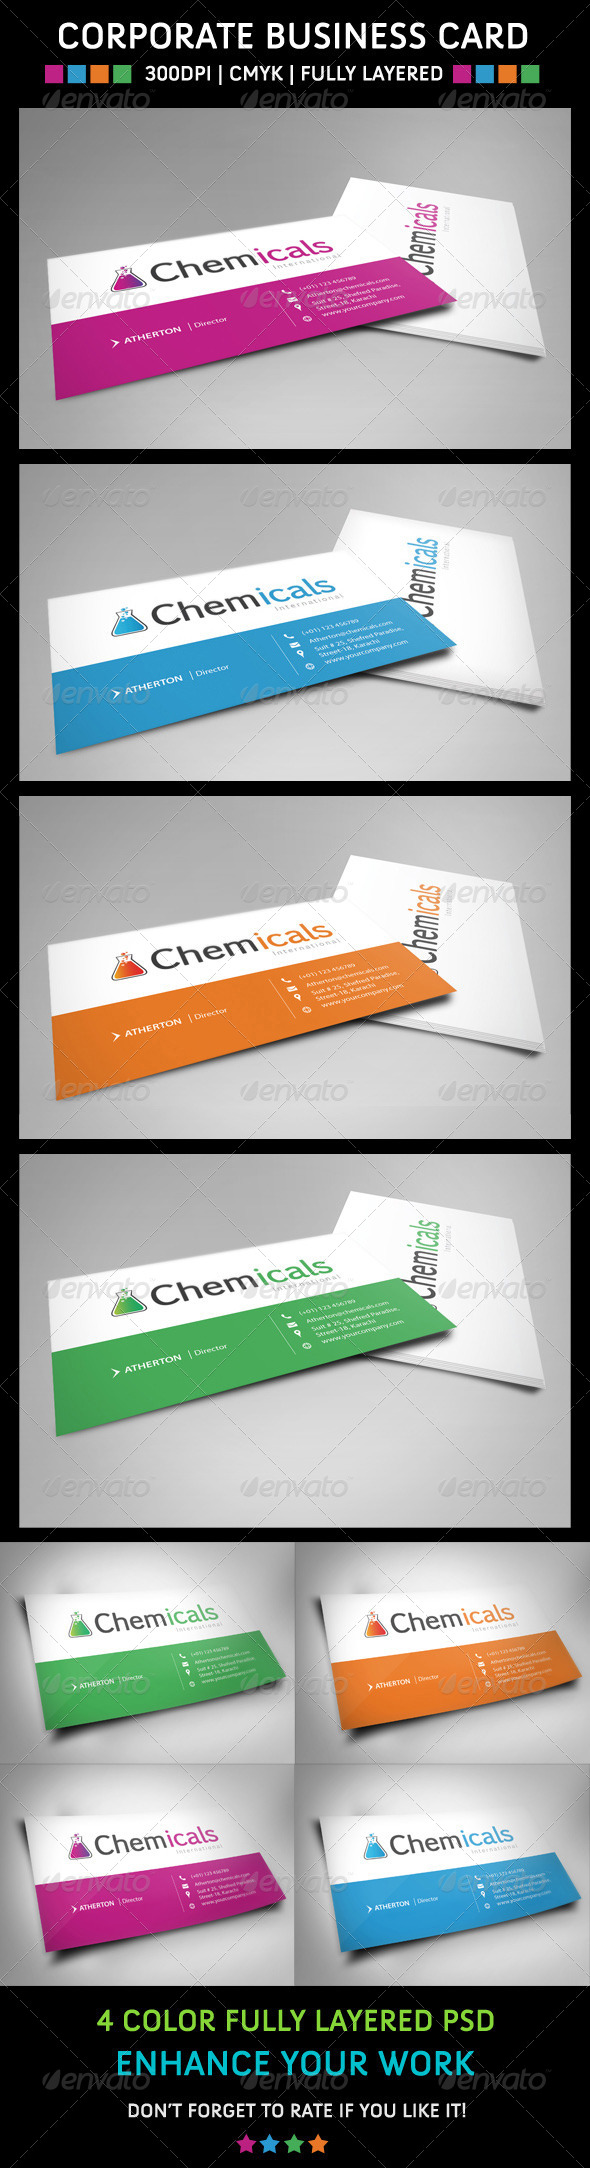 GraphicRiver Corporate Business Card 6160750